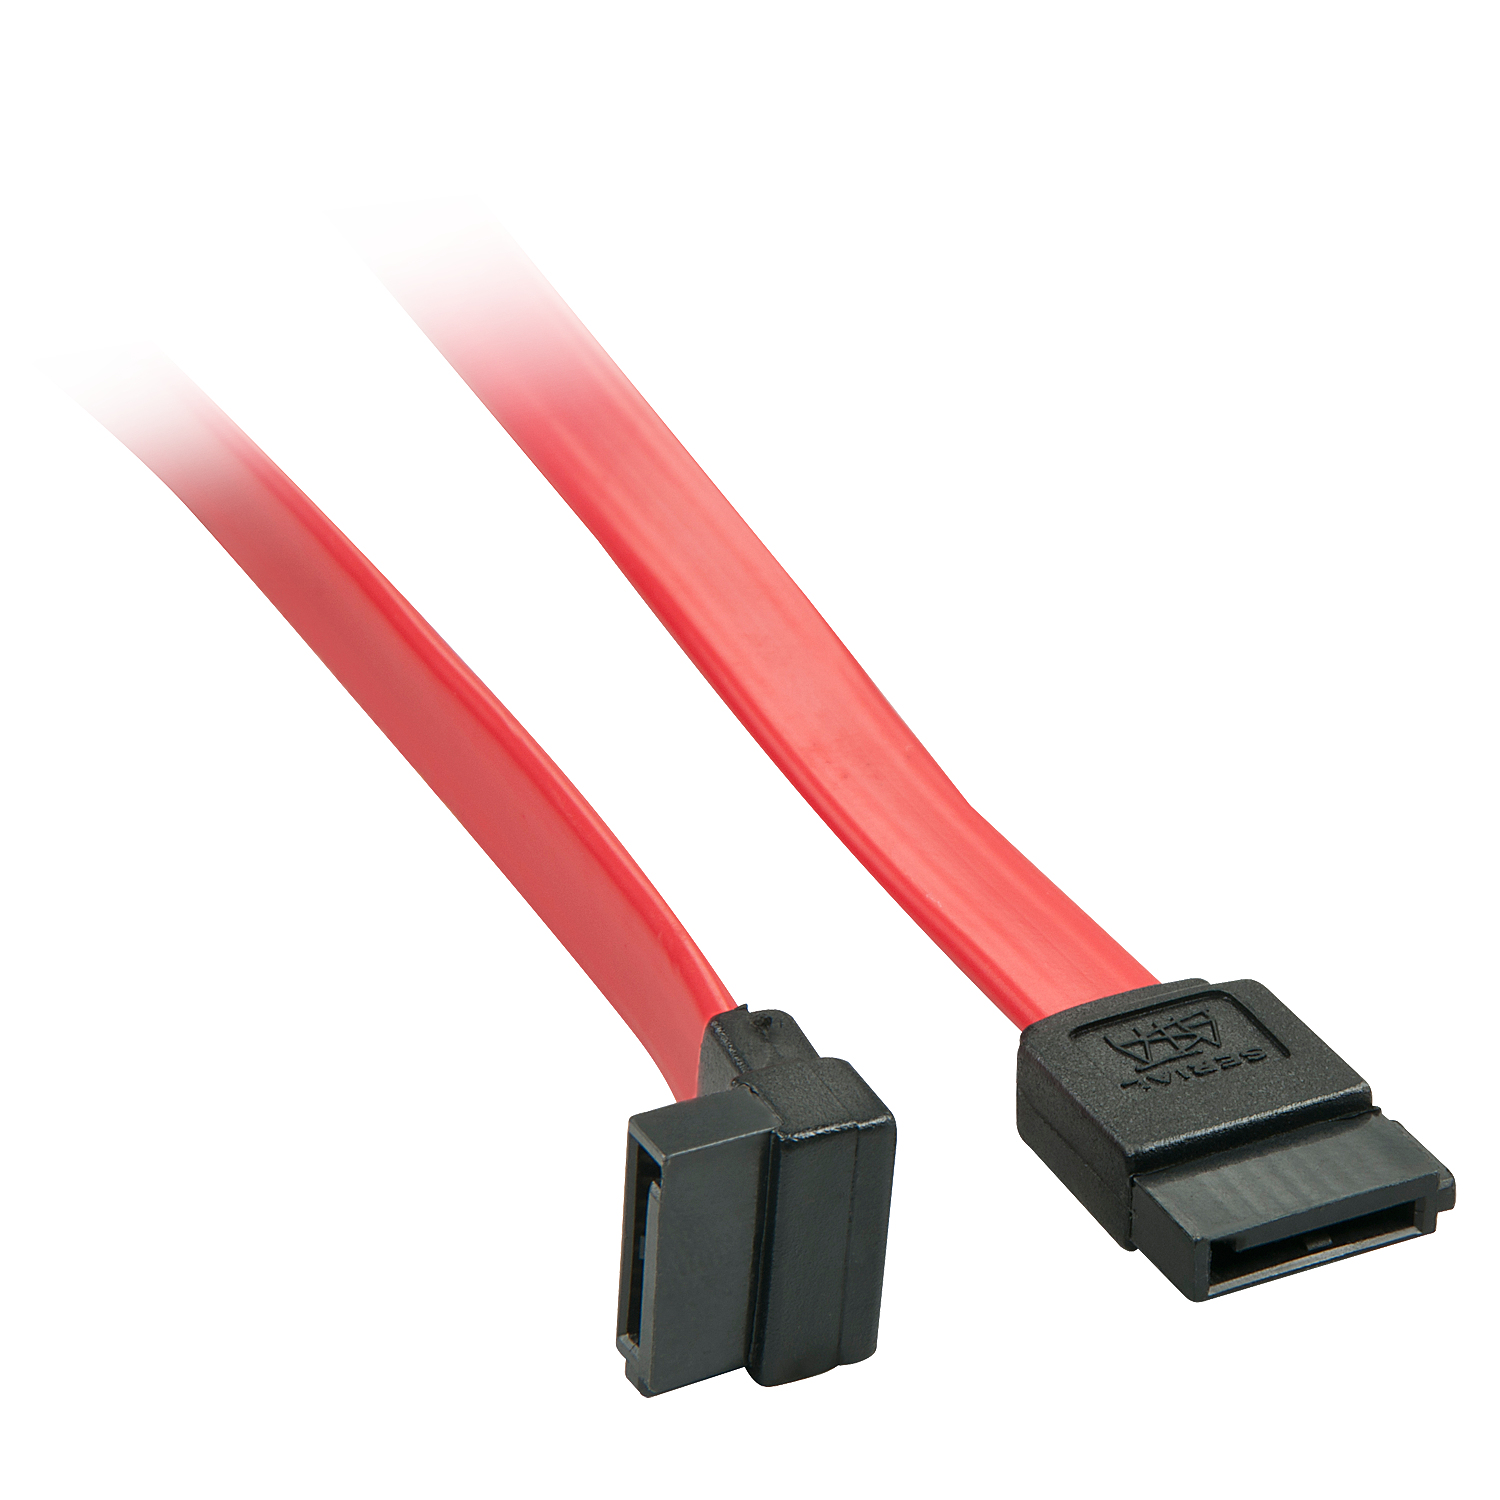 LINDY 33350 SATA CABLE 0.2 M RED 7-PIN